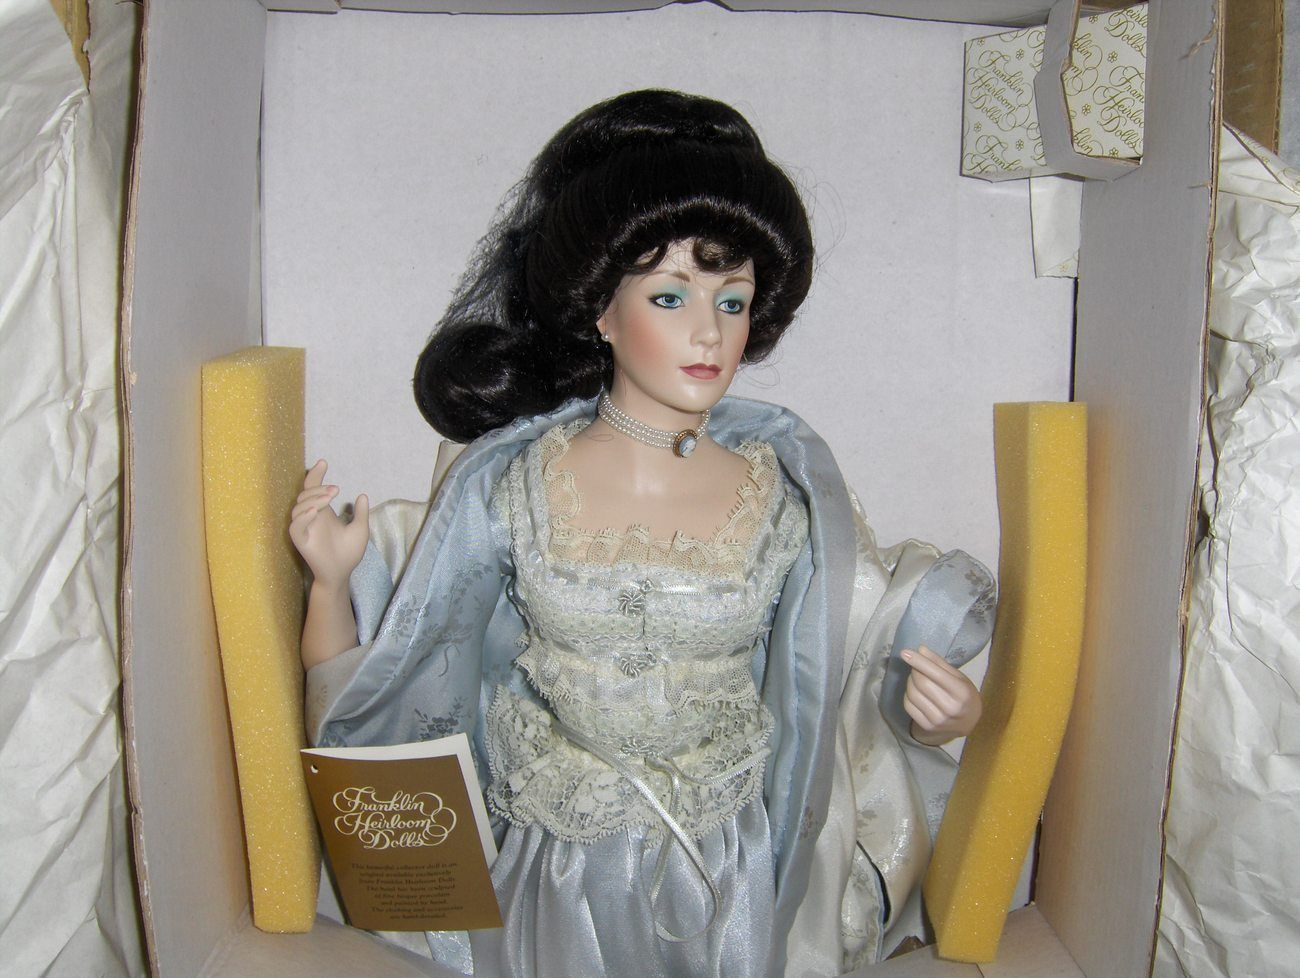 Franklin Mint Heirloom Gibson Girl Boudoir Doll Offered By